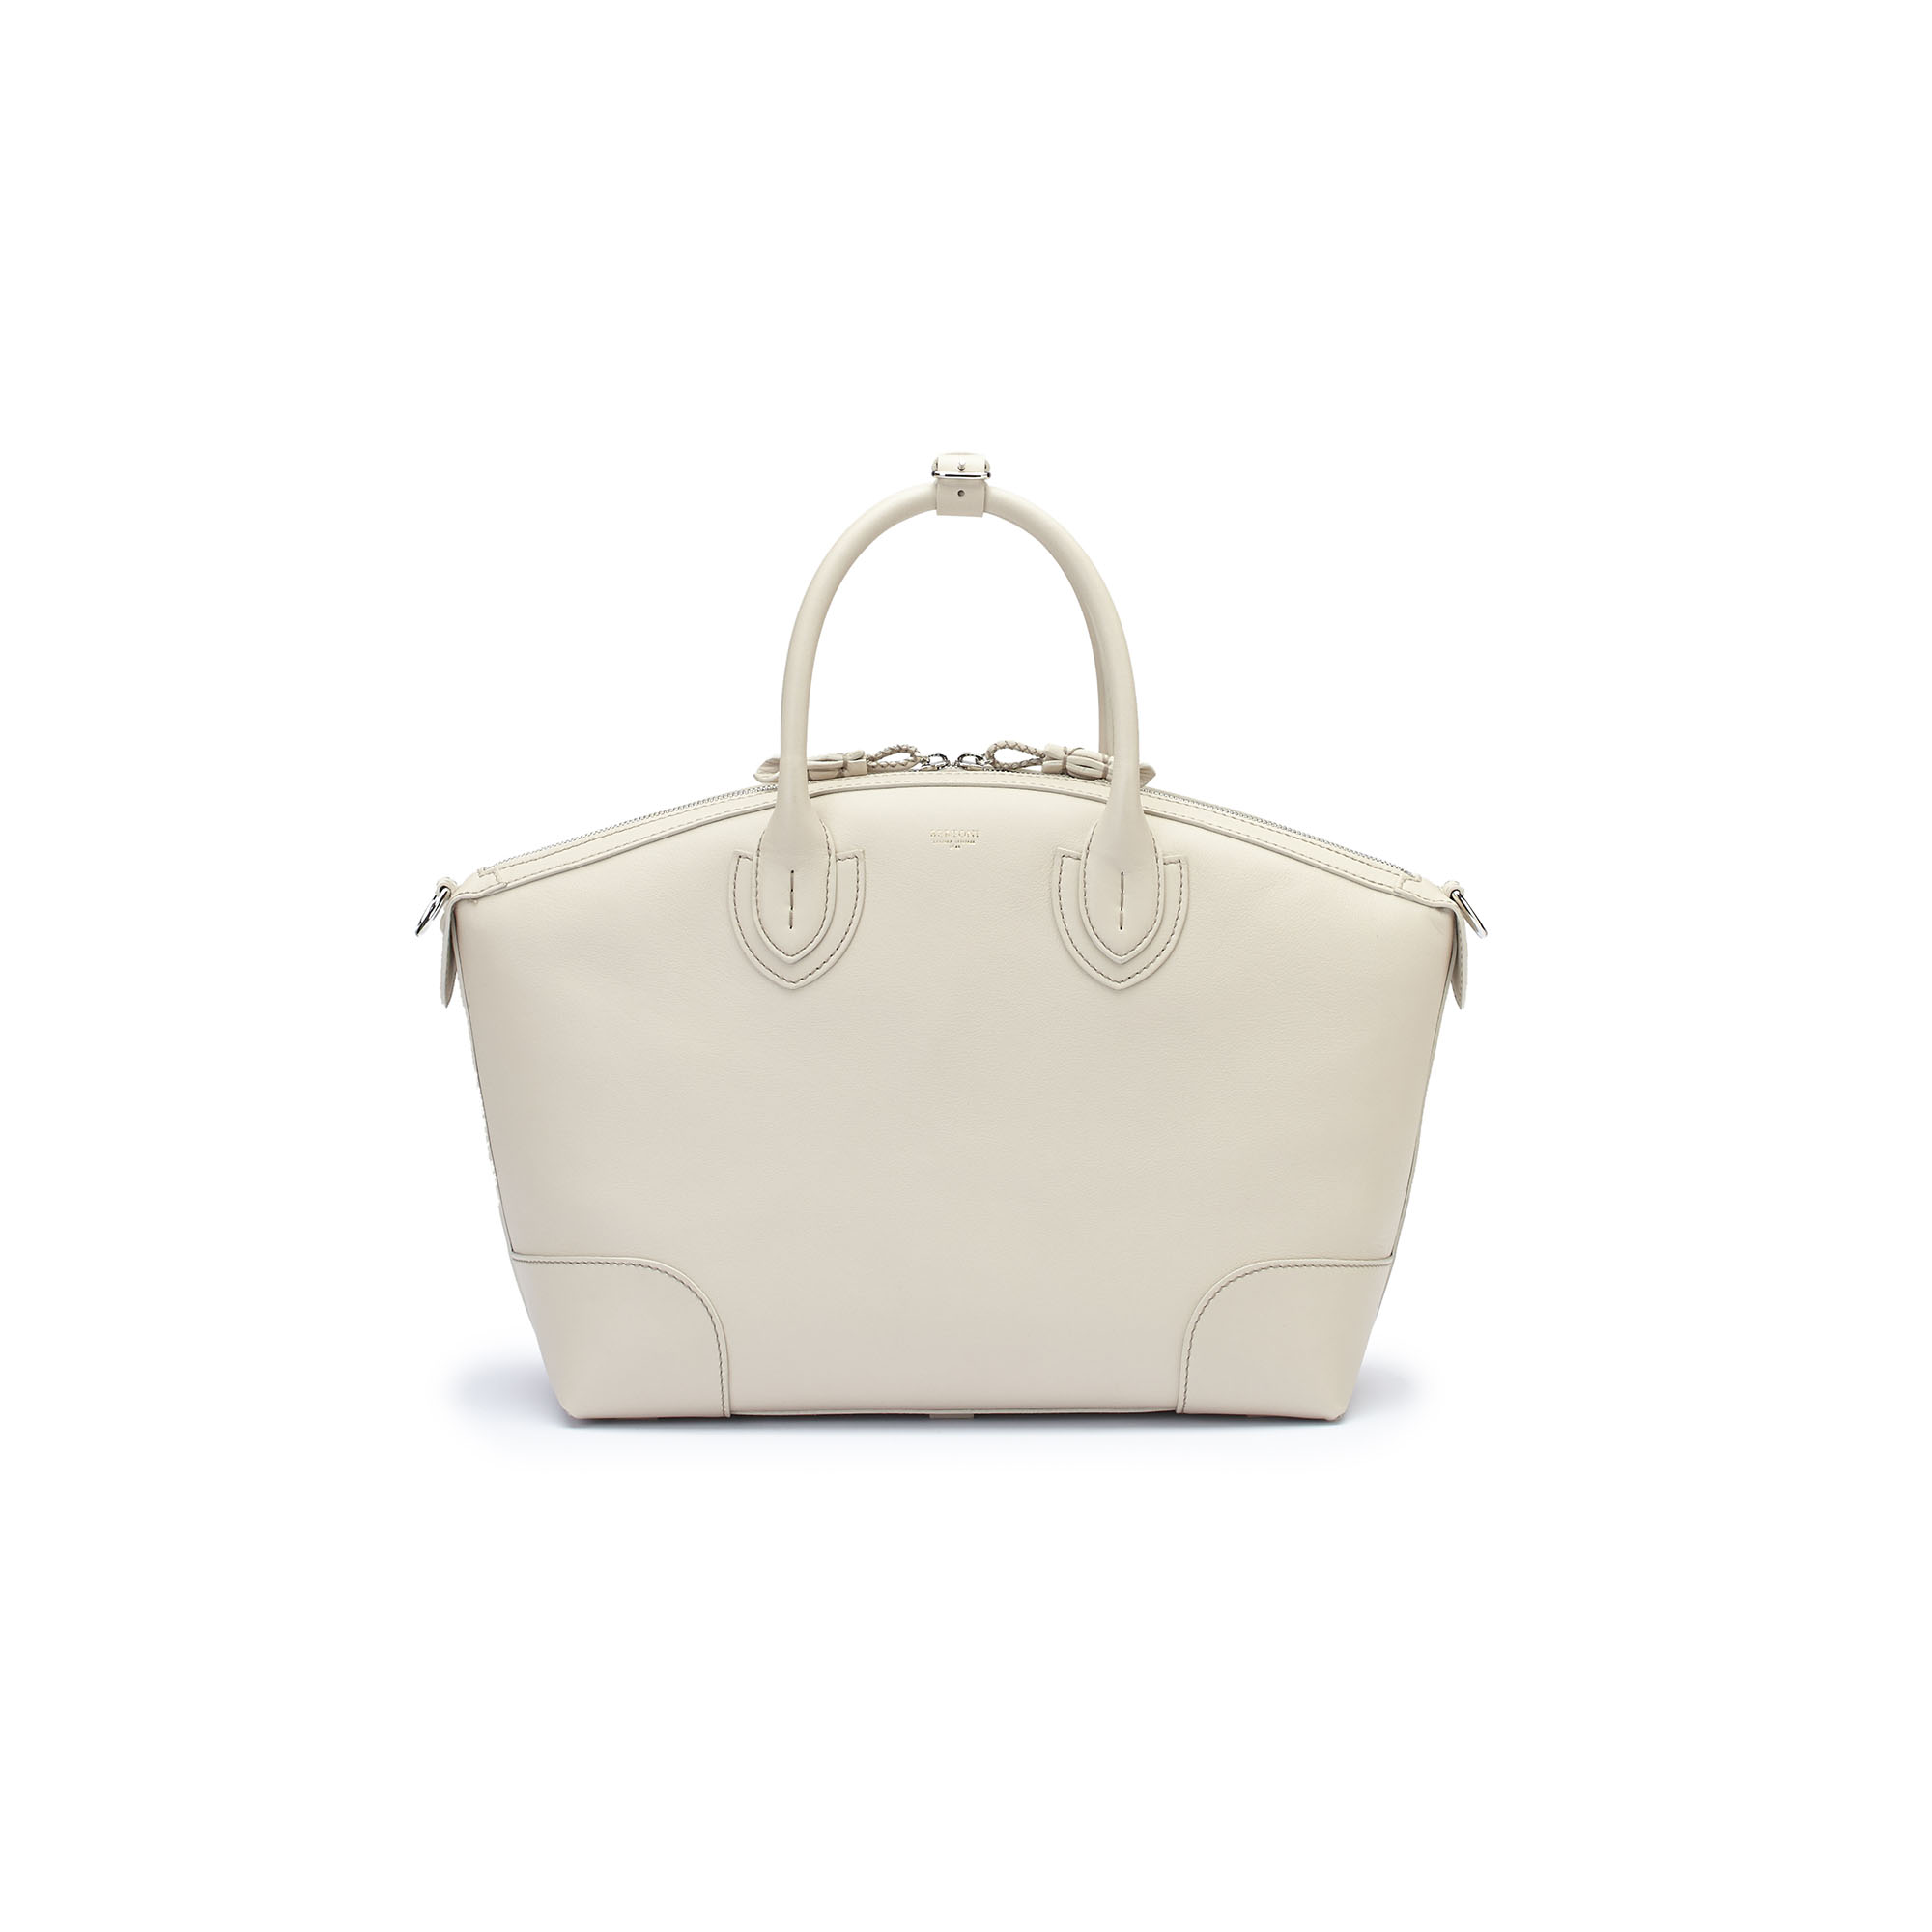 The ivory soft calf Anija bag by Bertoni 1949 01